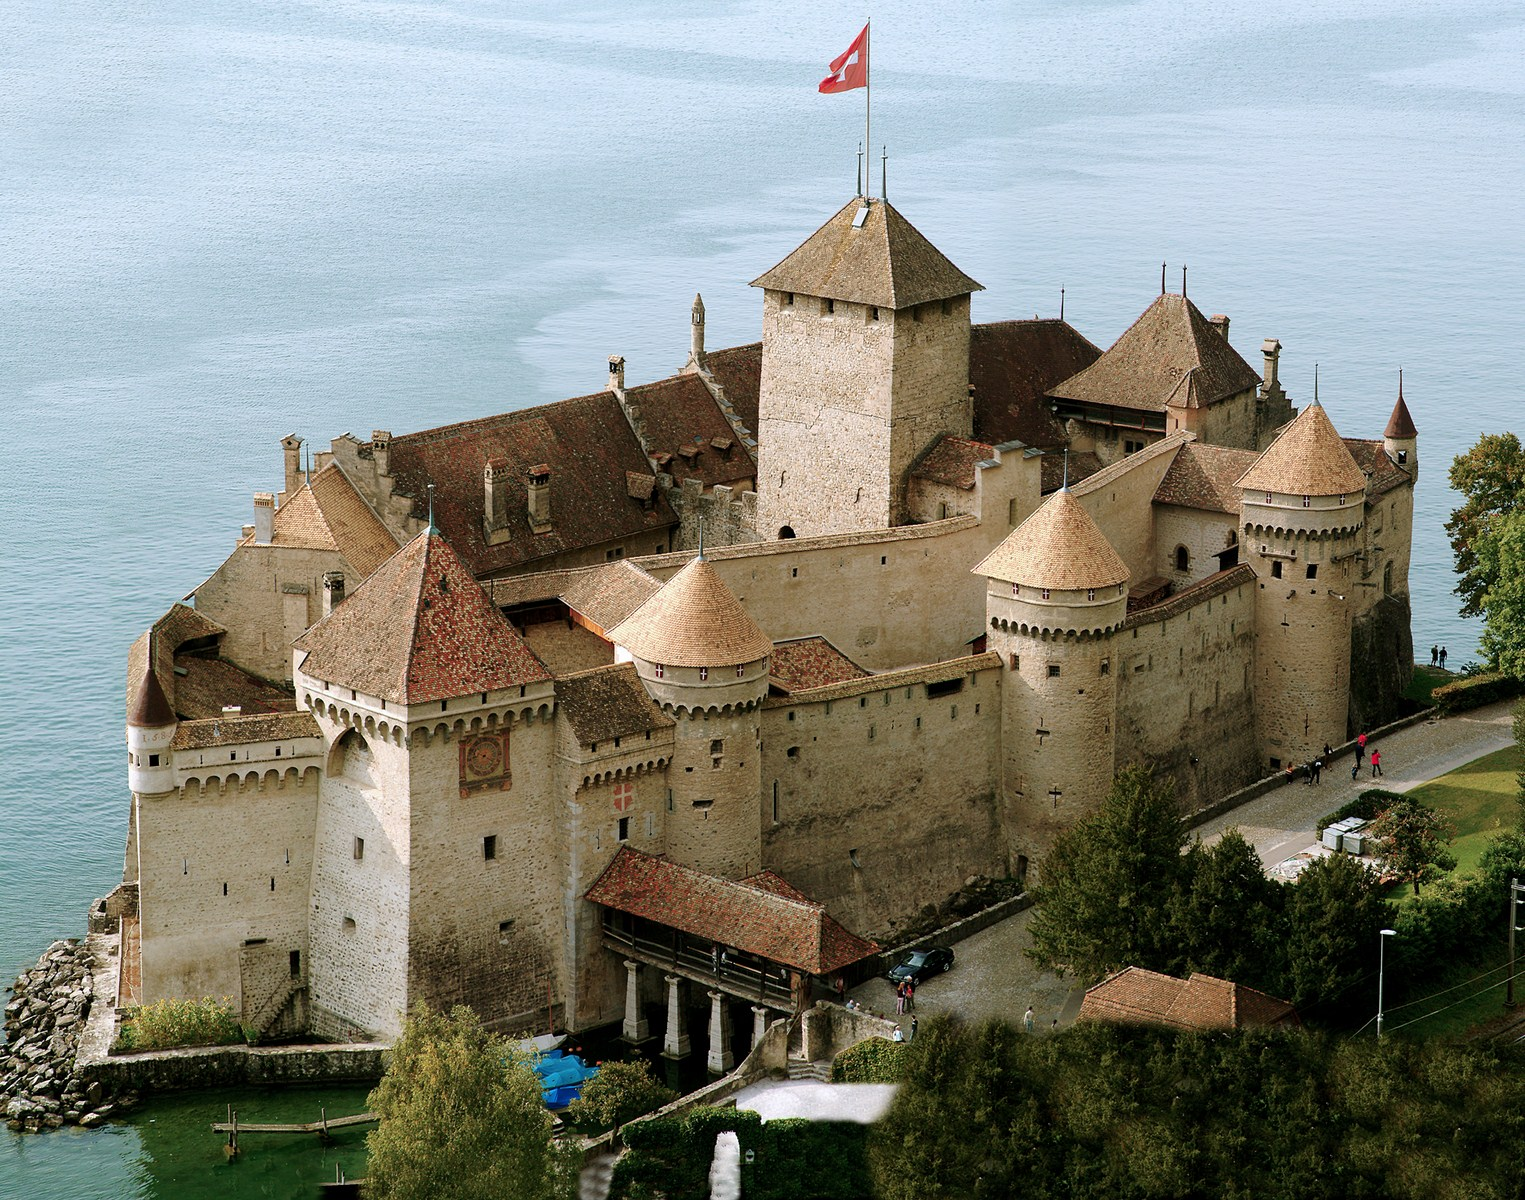 Chillon Castle  Switzerland - خیالبافی - Château de Chillon